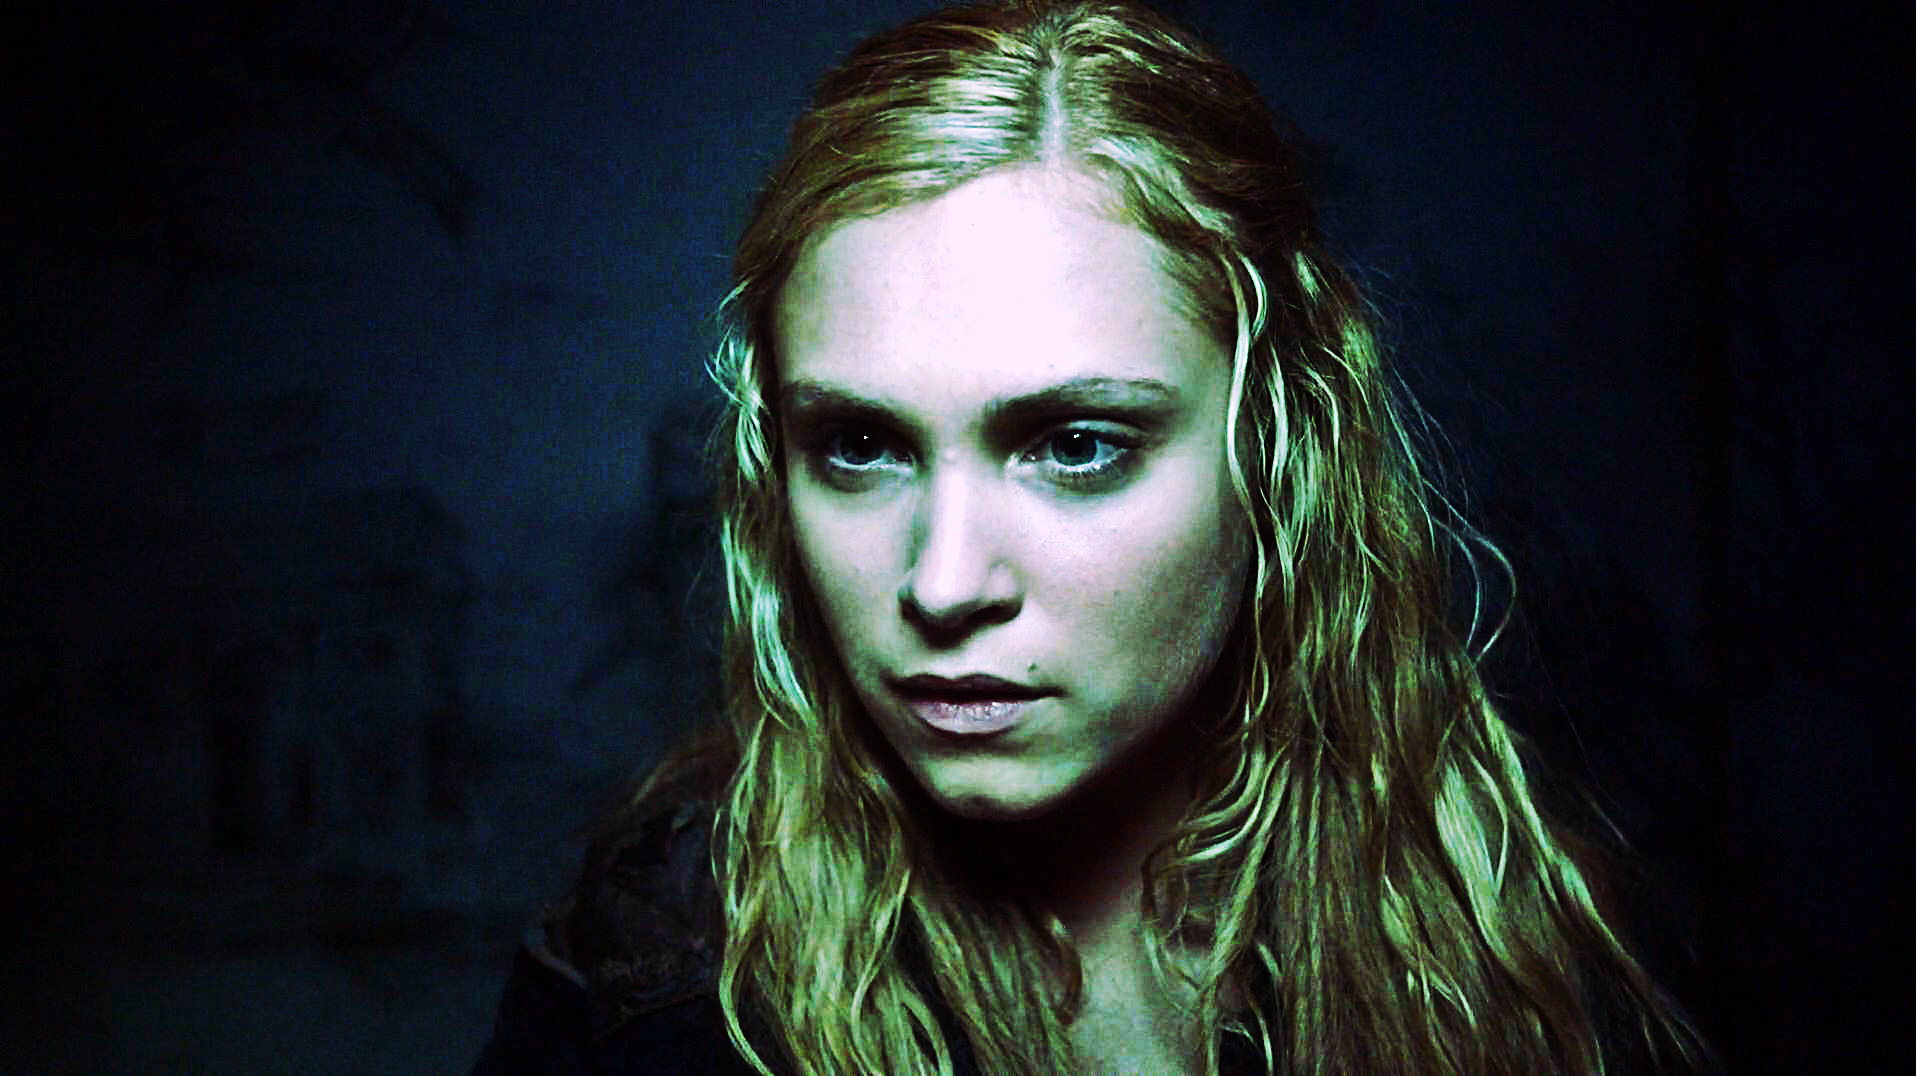 clarke griffin images clarke the 100 hd wallpaper and